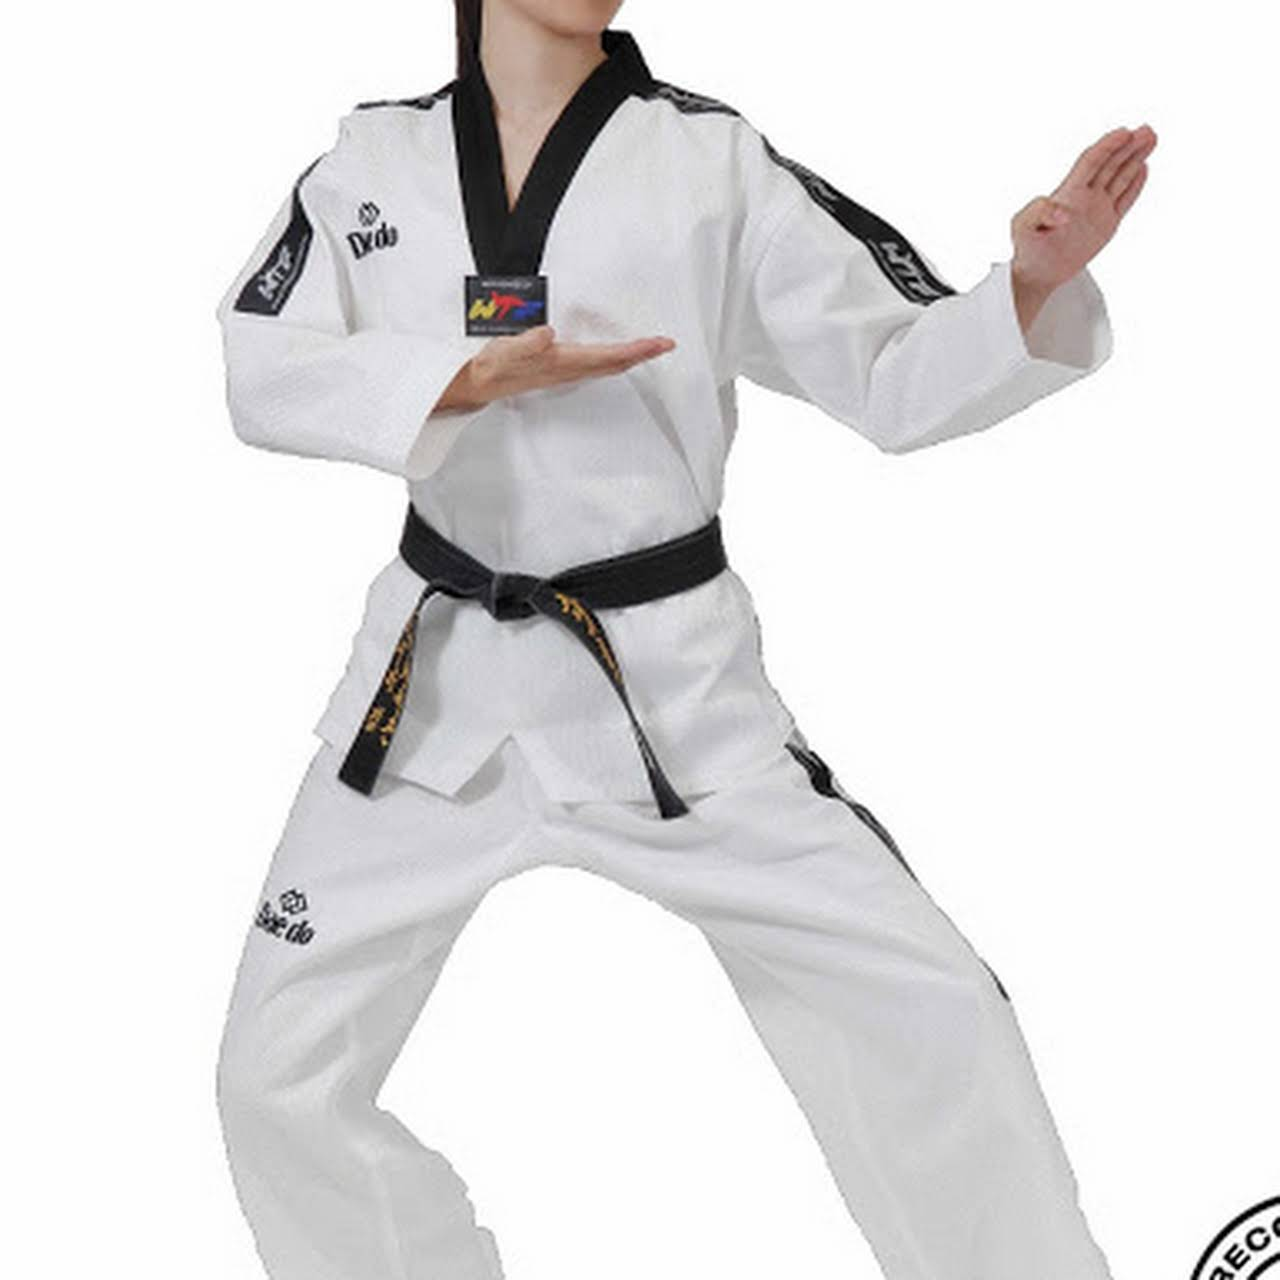 Taekwondo uniform & Equipment - Martial Arts Supply Store in